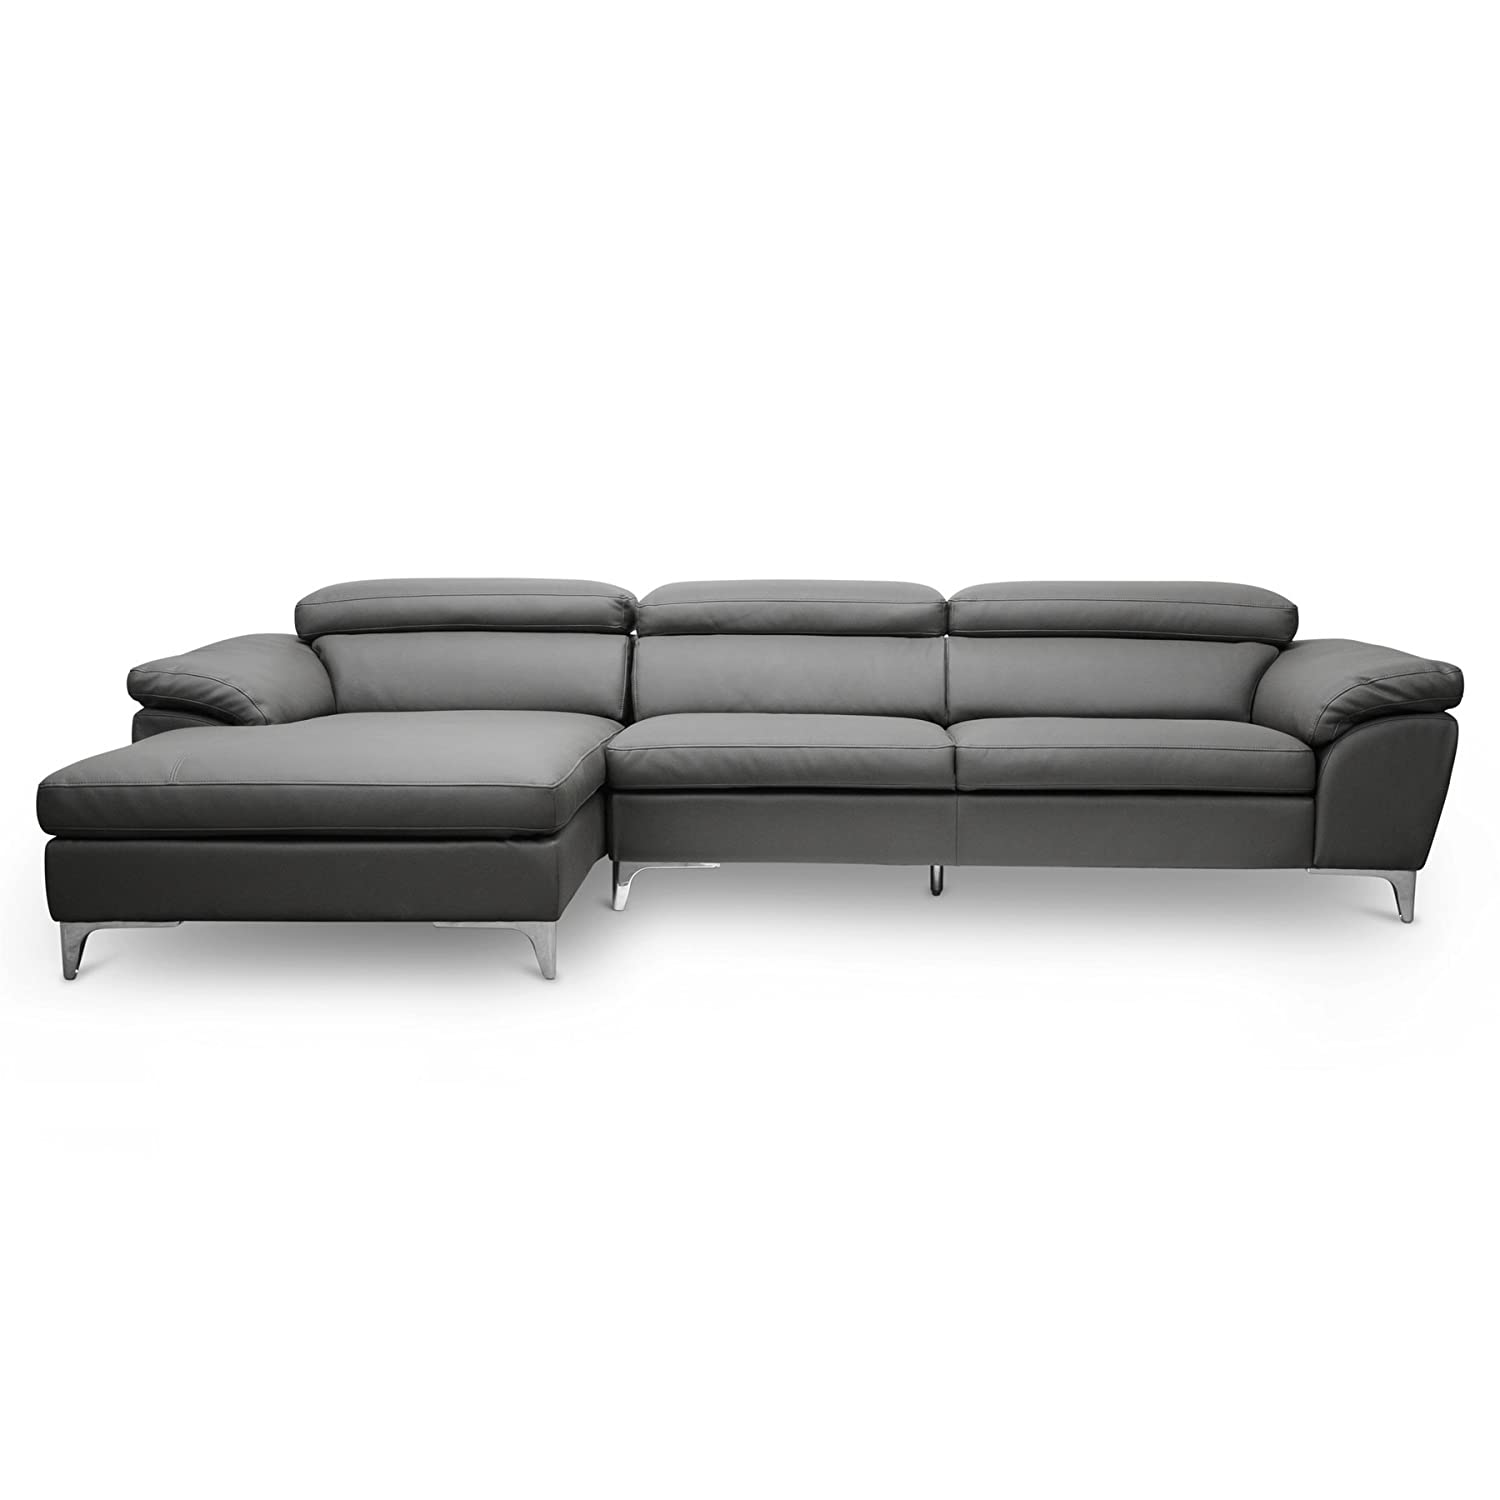 Amazon Baxton Studio 1868 CU001 LFC Voight Modern Sectional